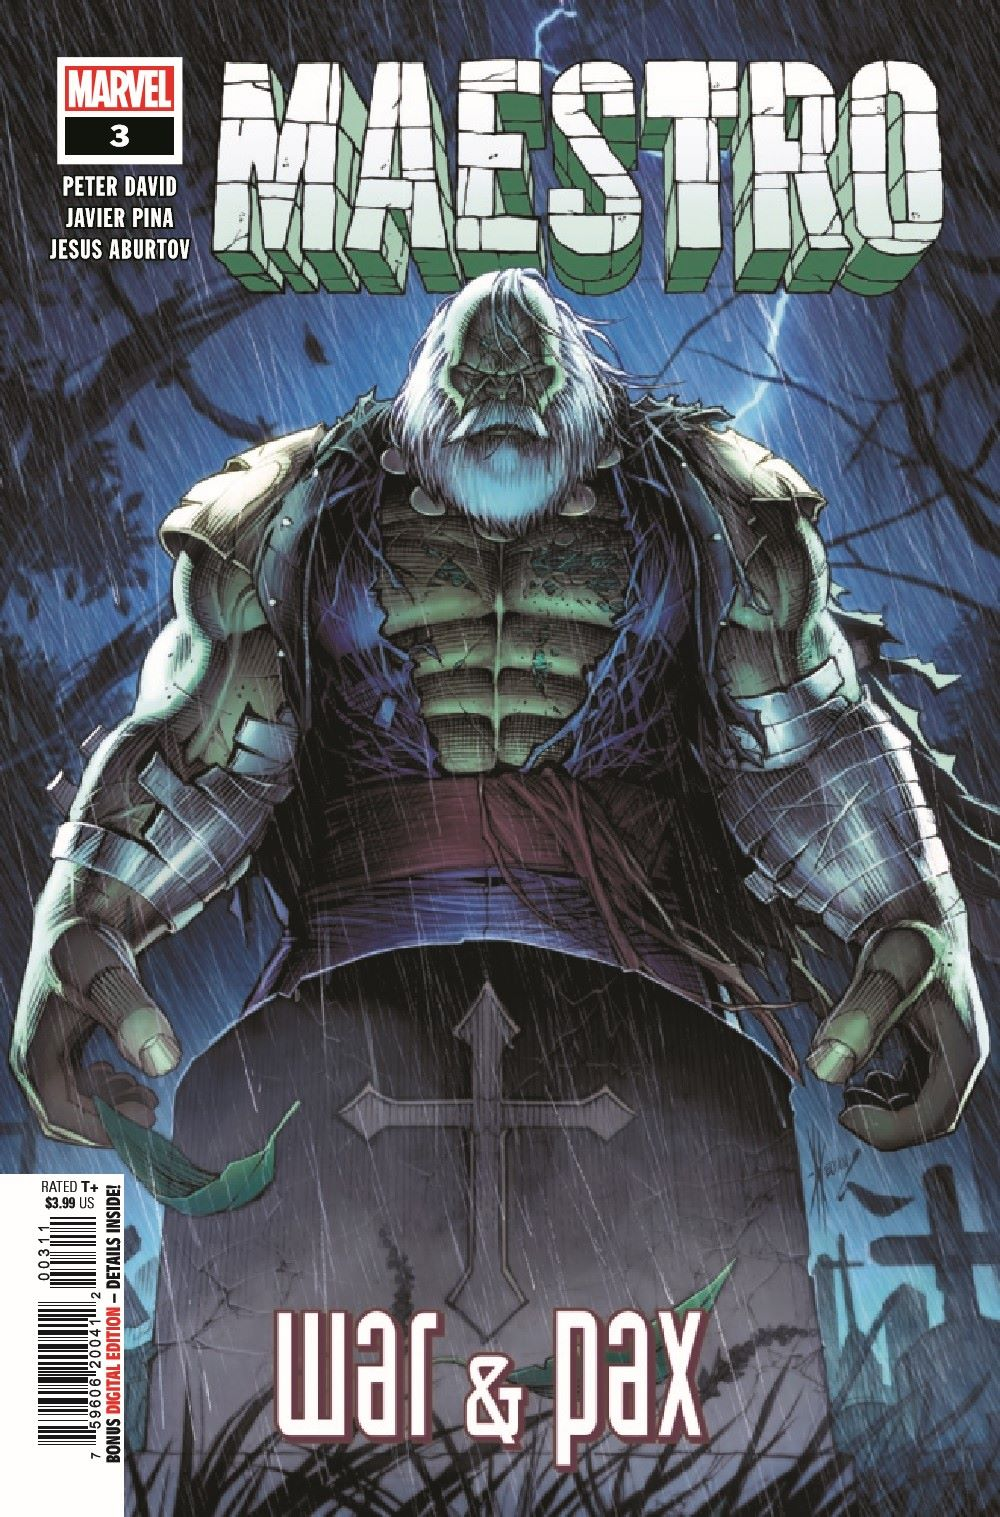 MAESTROWAP2021003_Preview-1 ComicList Previews: MAESTRO WAR AND PAX #3 (OF 5)